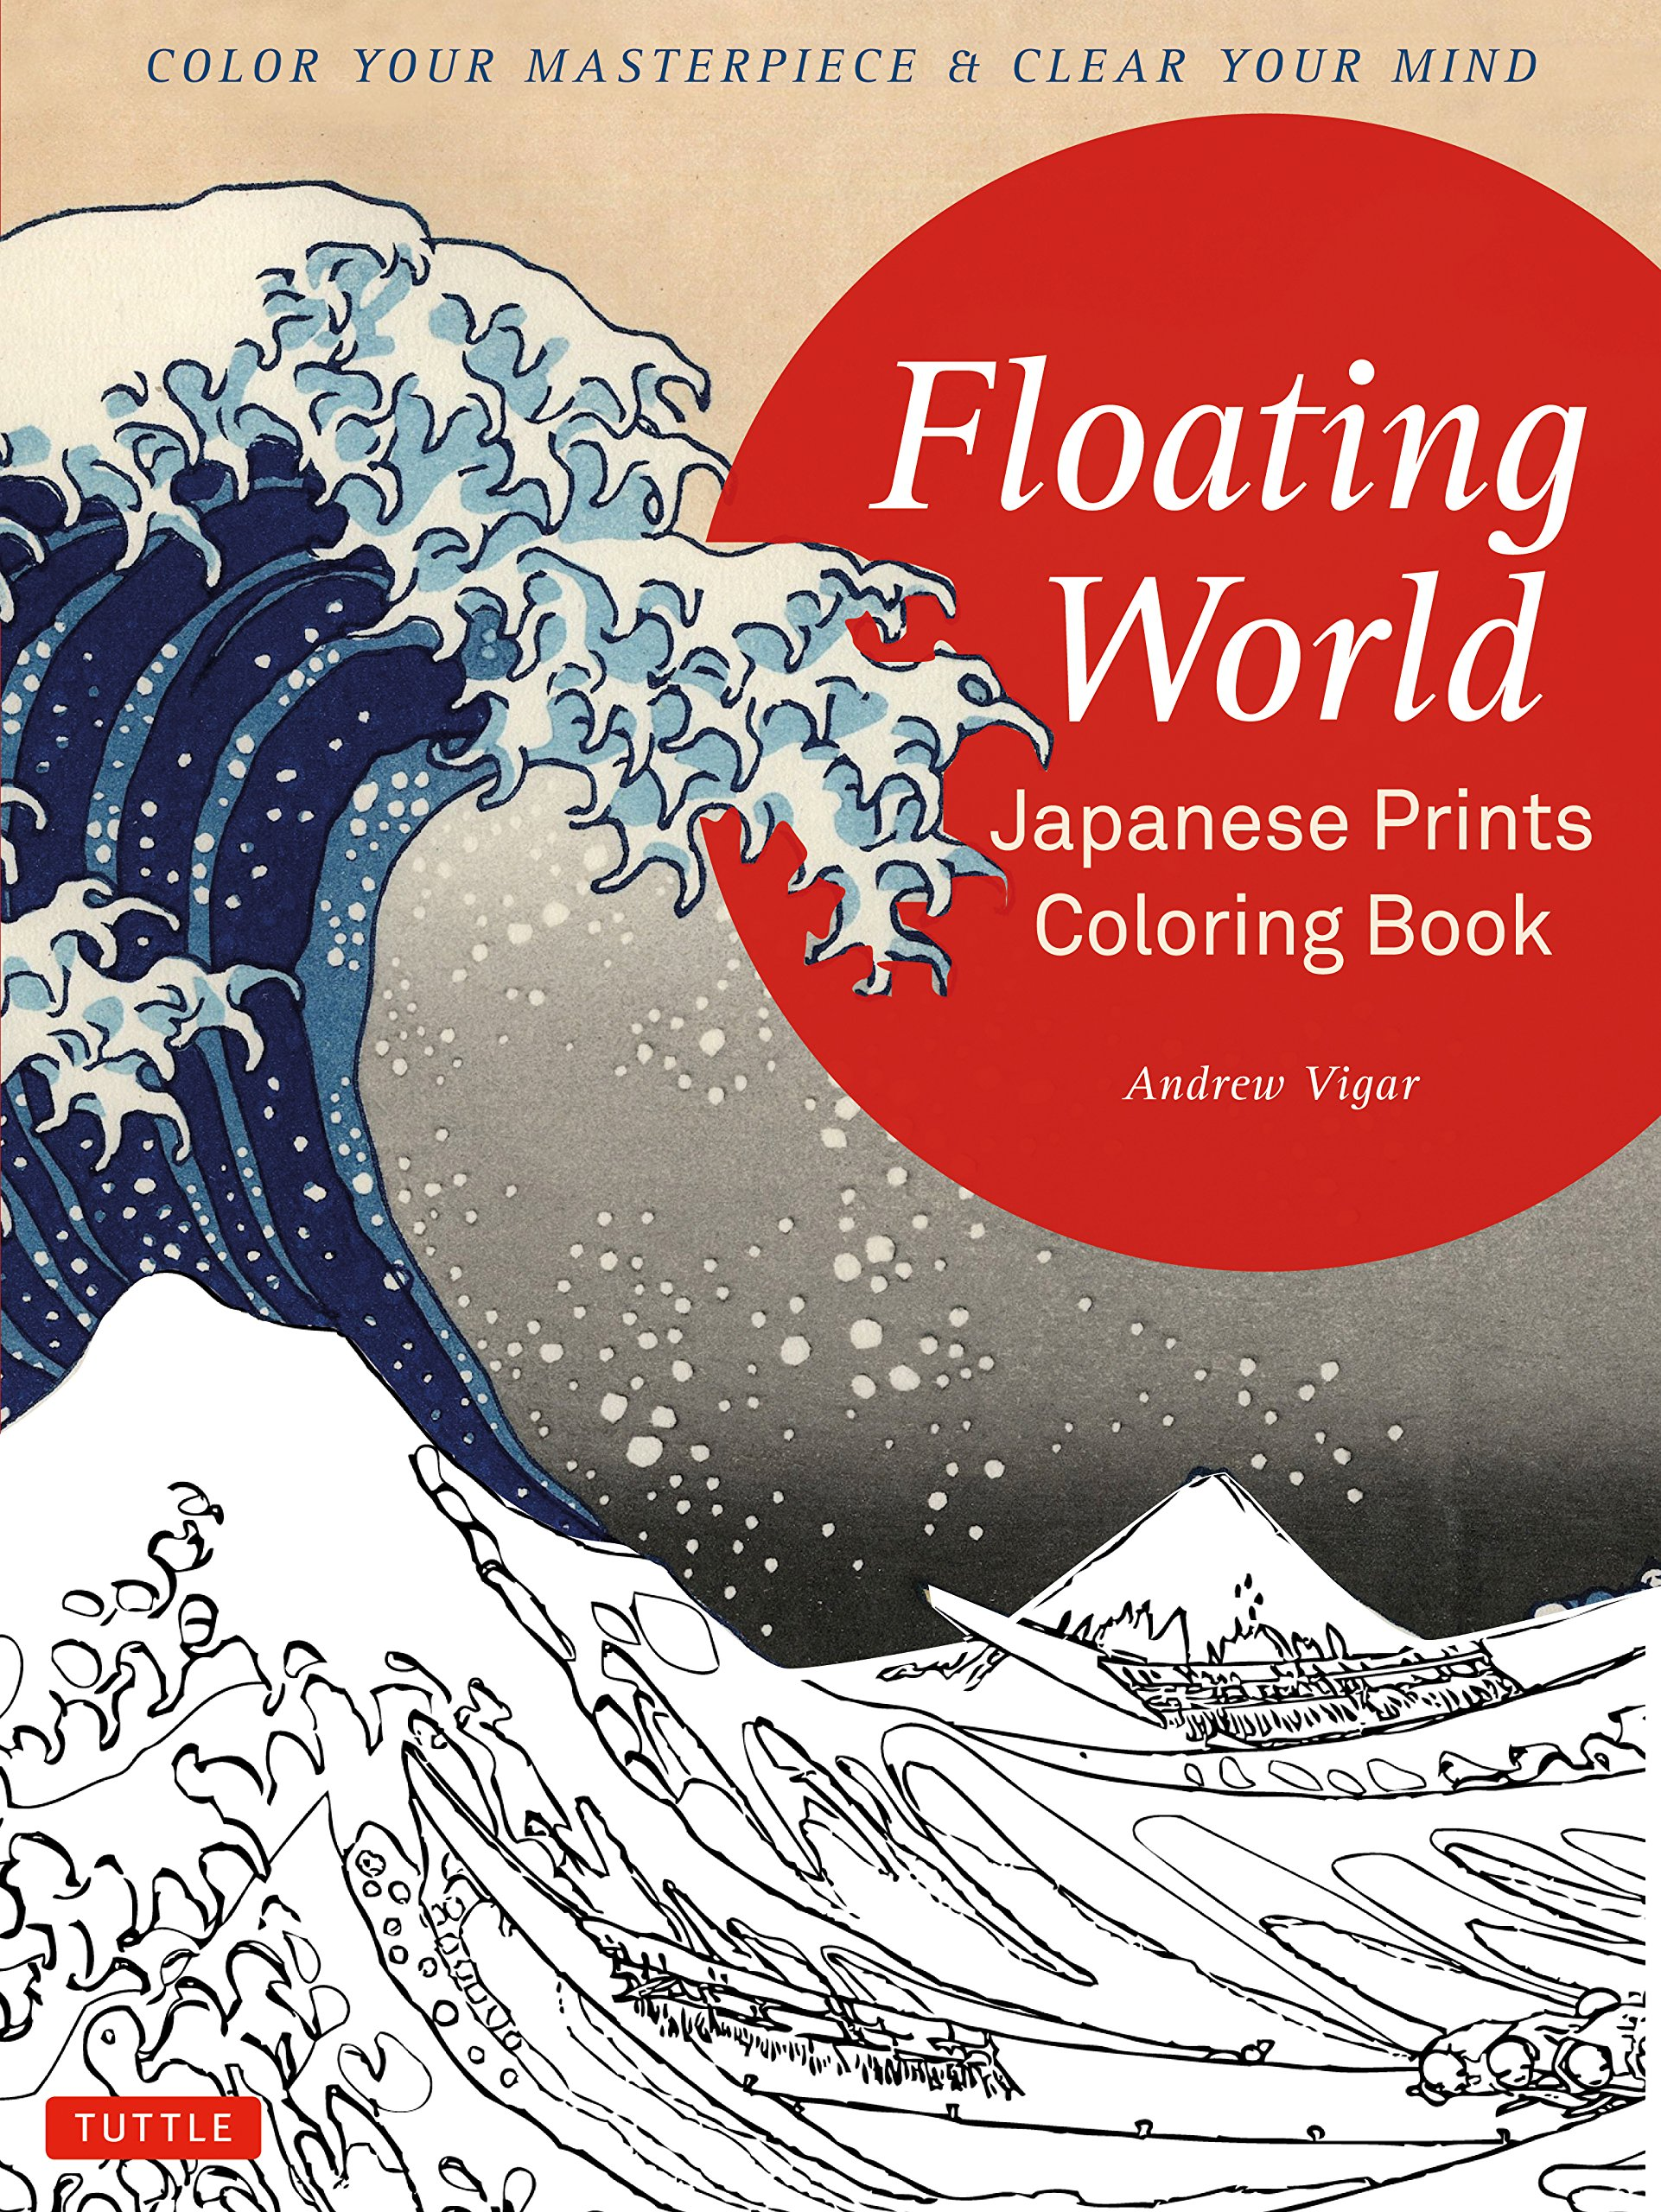 Floating World Japanese Prints Coloring product image